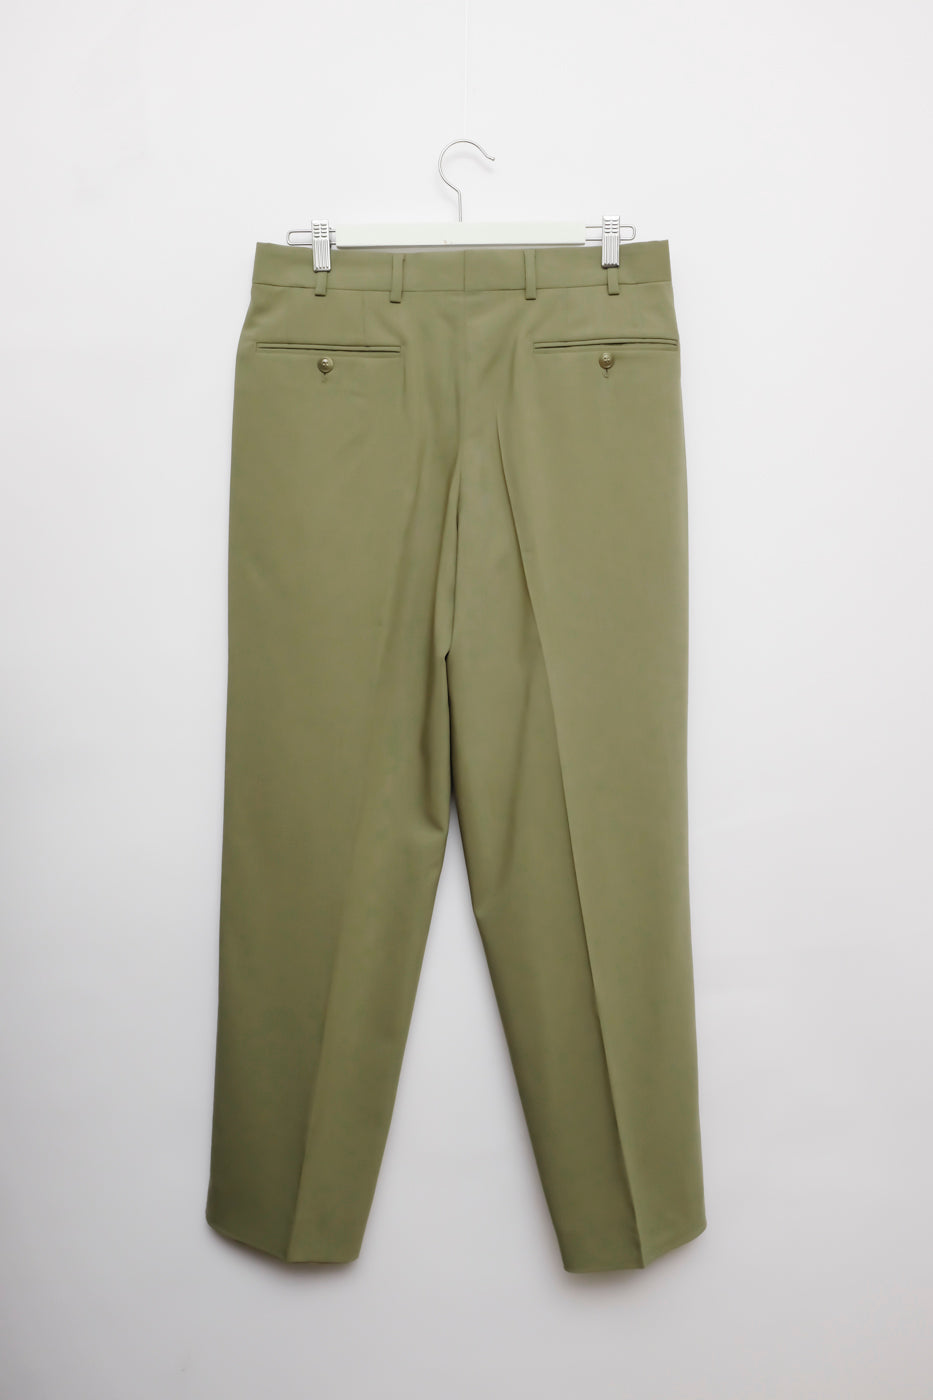 0002_DARK MINT PLEATED PANTS